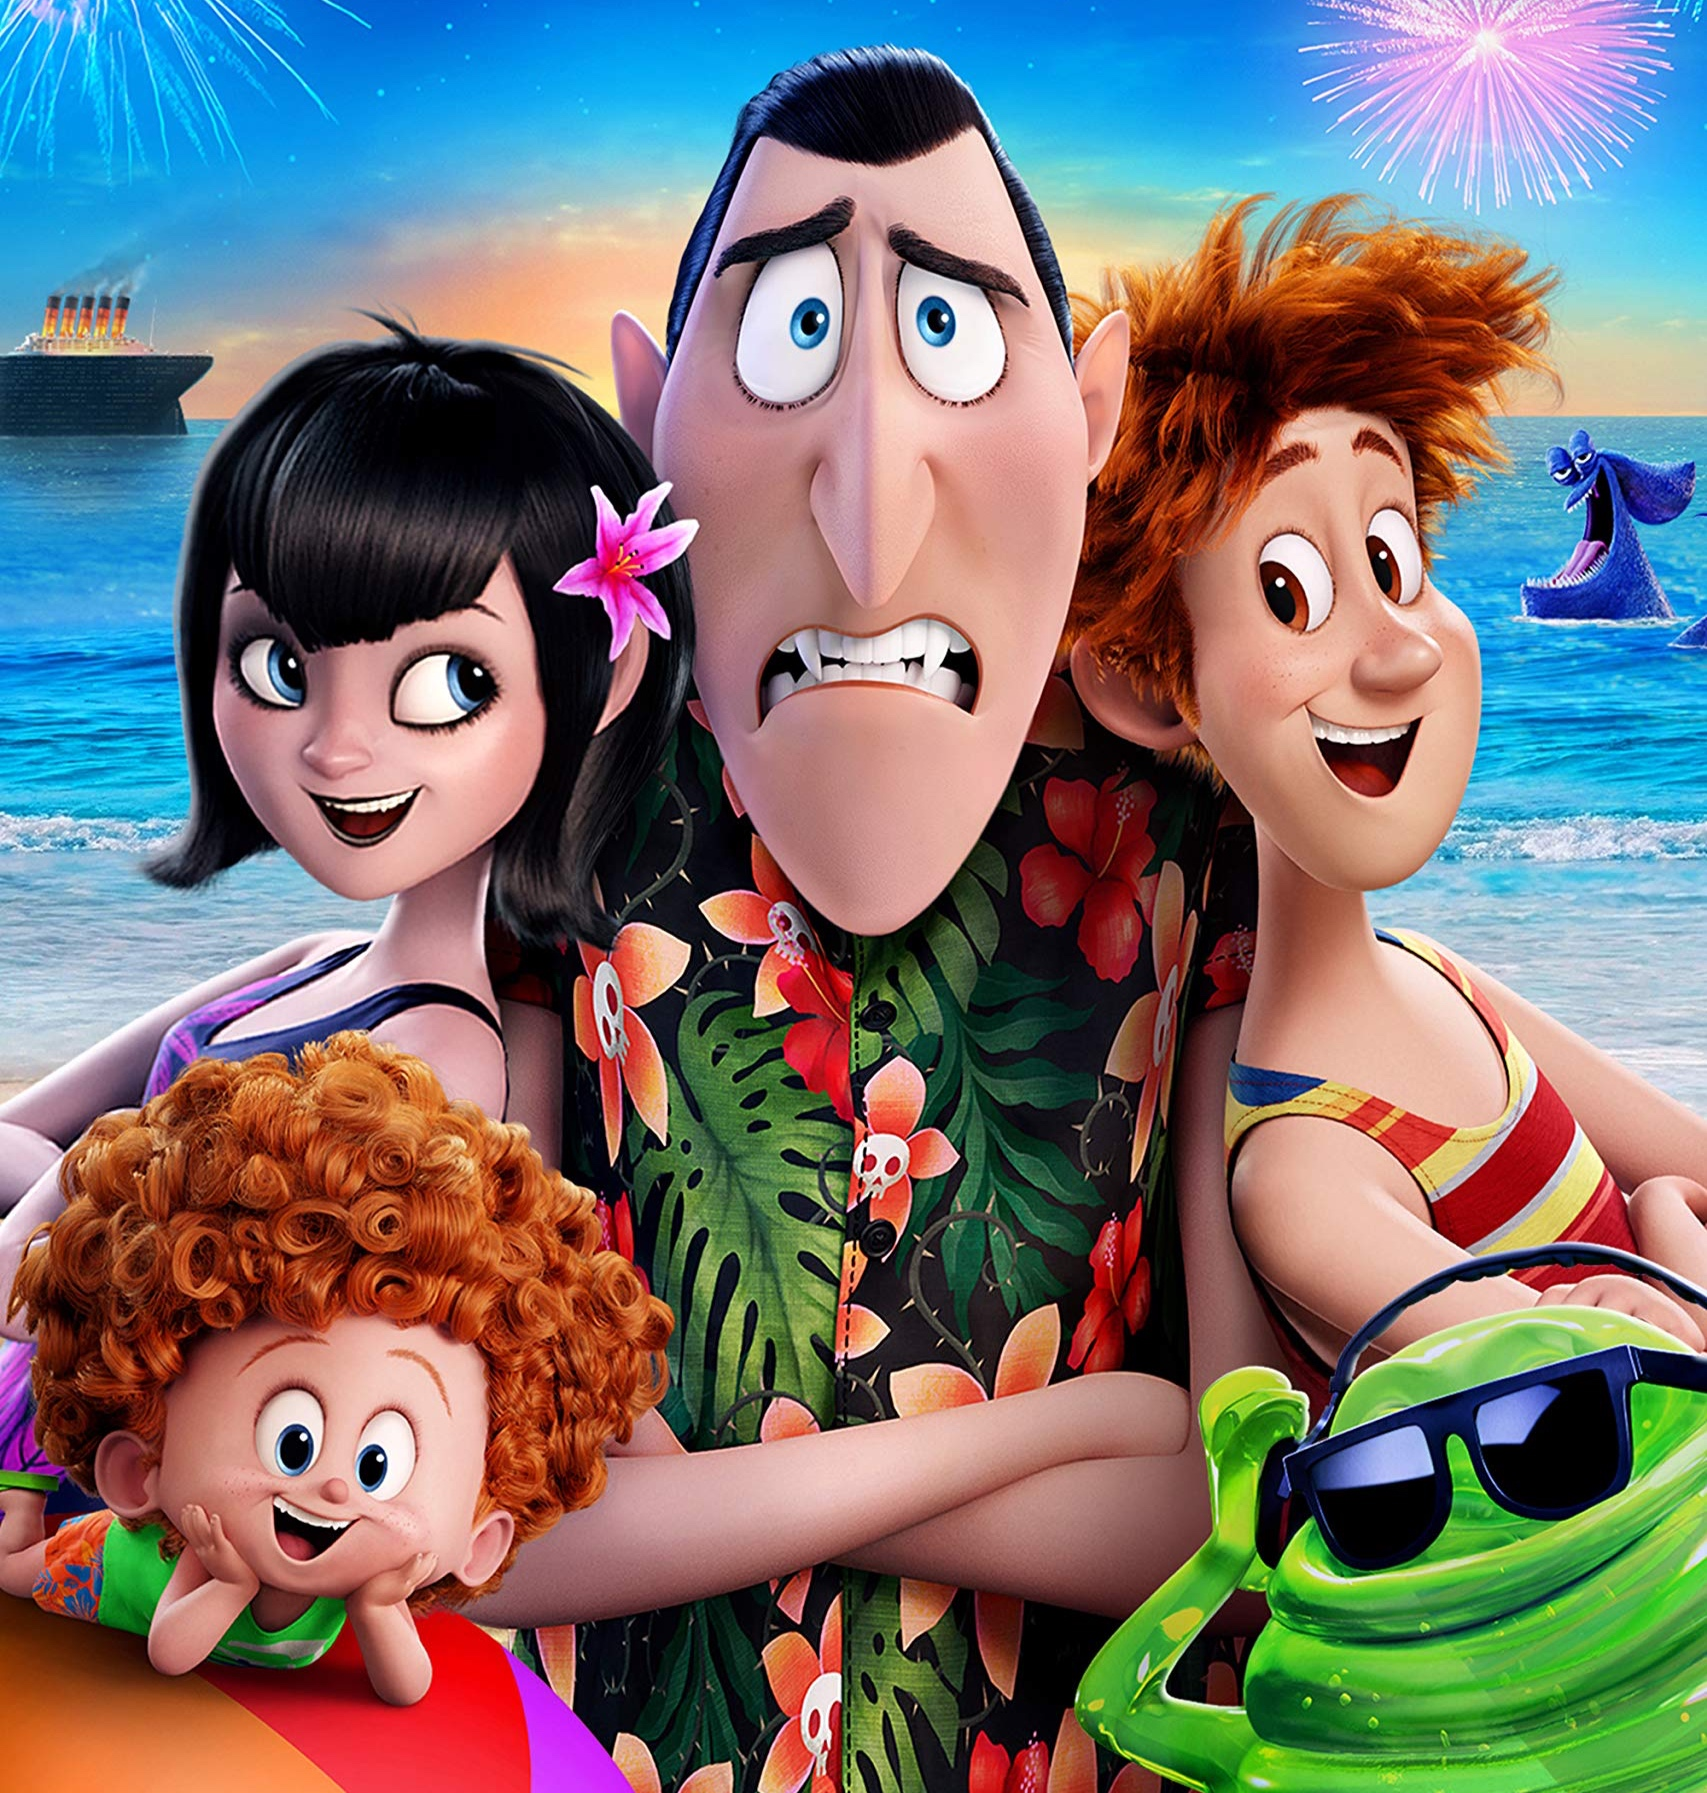 MOVIEIN THEPARK - HOTEL TRANSYLVANIA 3JUNE 28PARK AT SIXTHDOWNTOWN GRIFFINPARTY STARTS AT 7:00